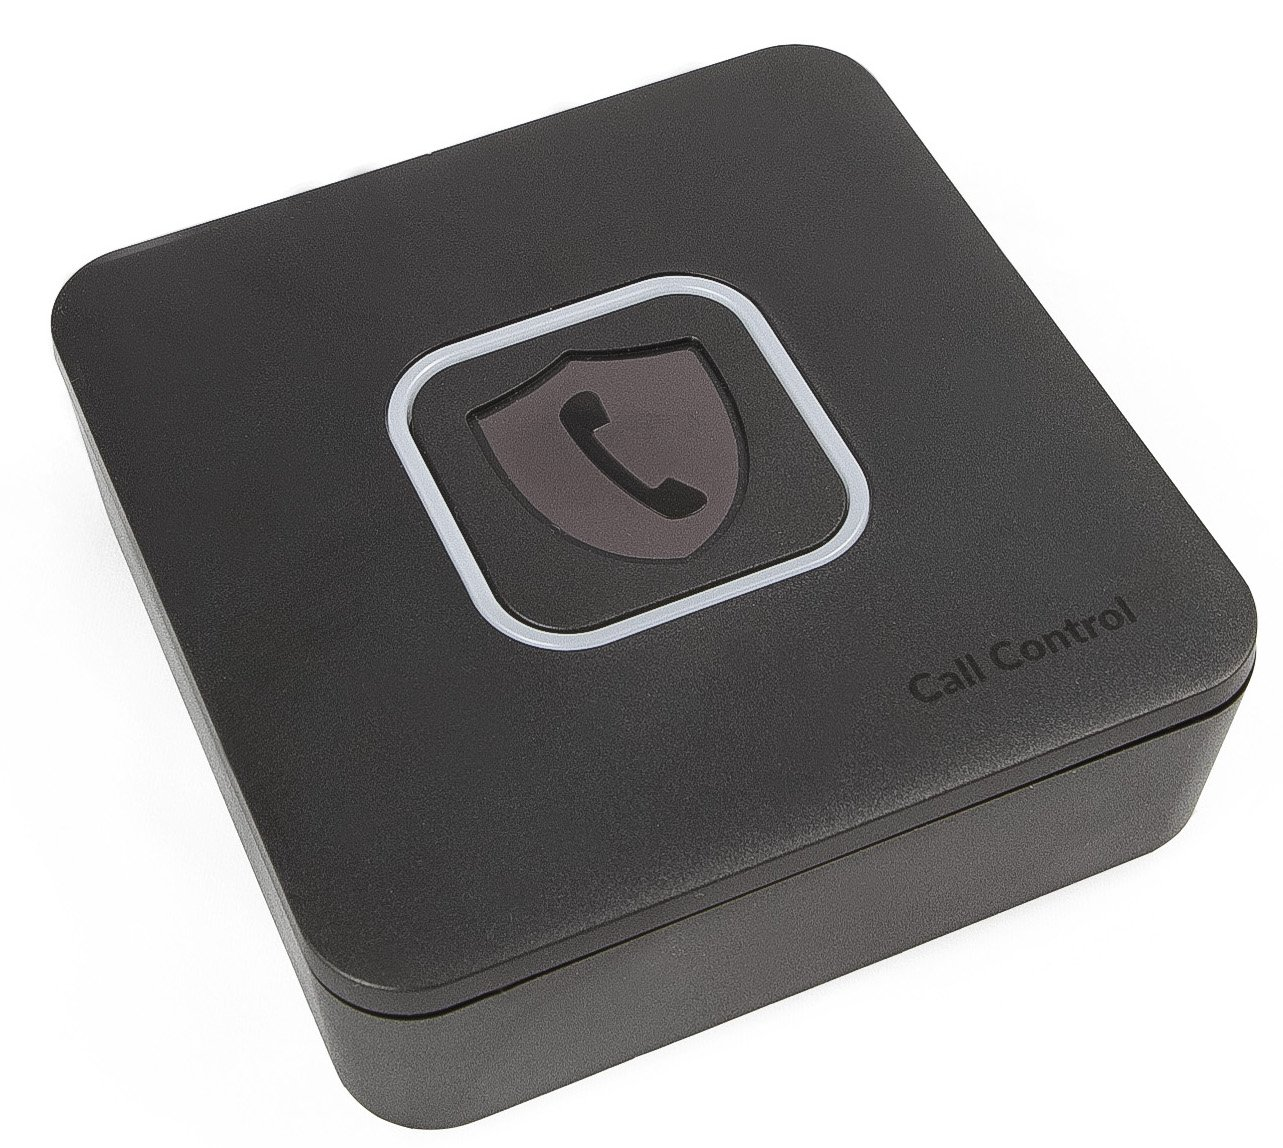 Call Control Home - iOS ONLY Landline and VOIP Call Blocker, Blocks RoboCalls, Political Calls, Scam Calls, Unwanted Calls. Automatically Synced with Updated block list via CallControl.com by Call Control